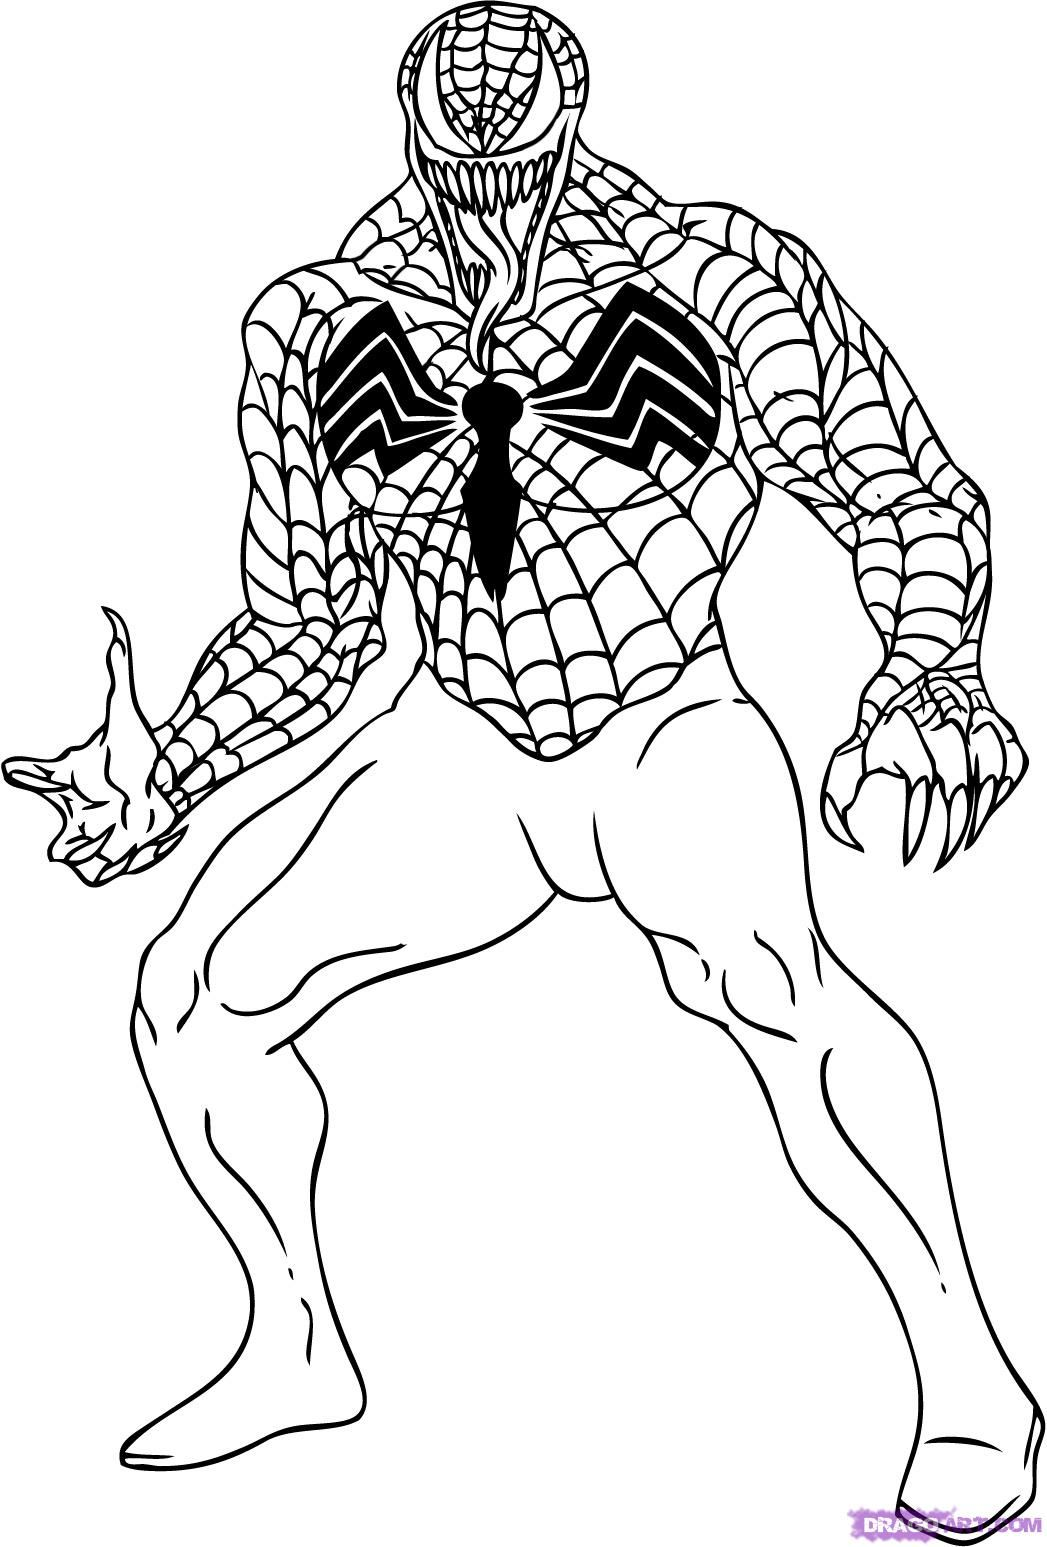 venom coloring pages | Coloring Pages in 13 | Pinterest | Coloring ...